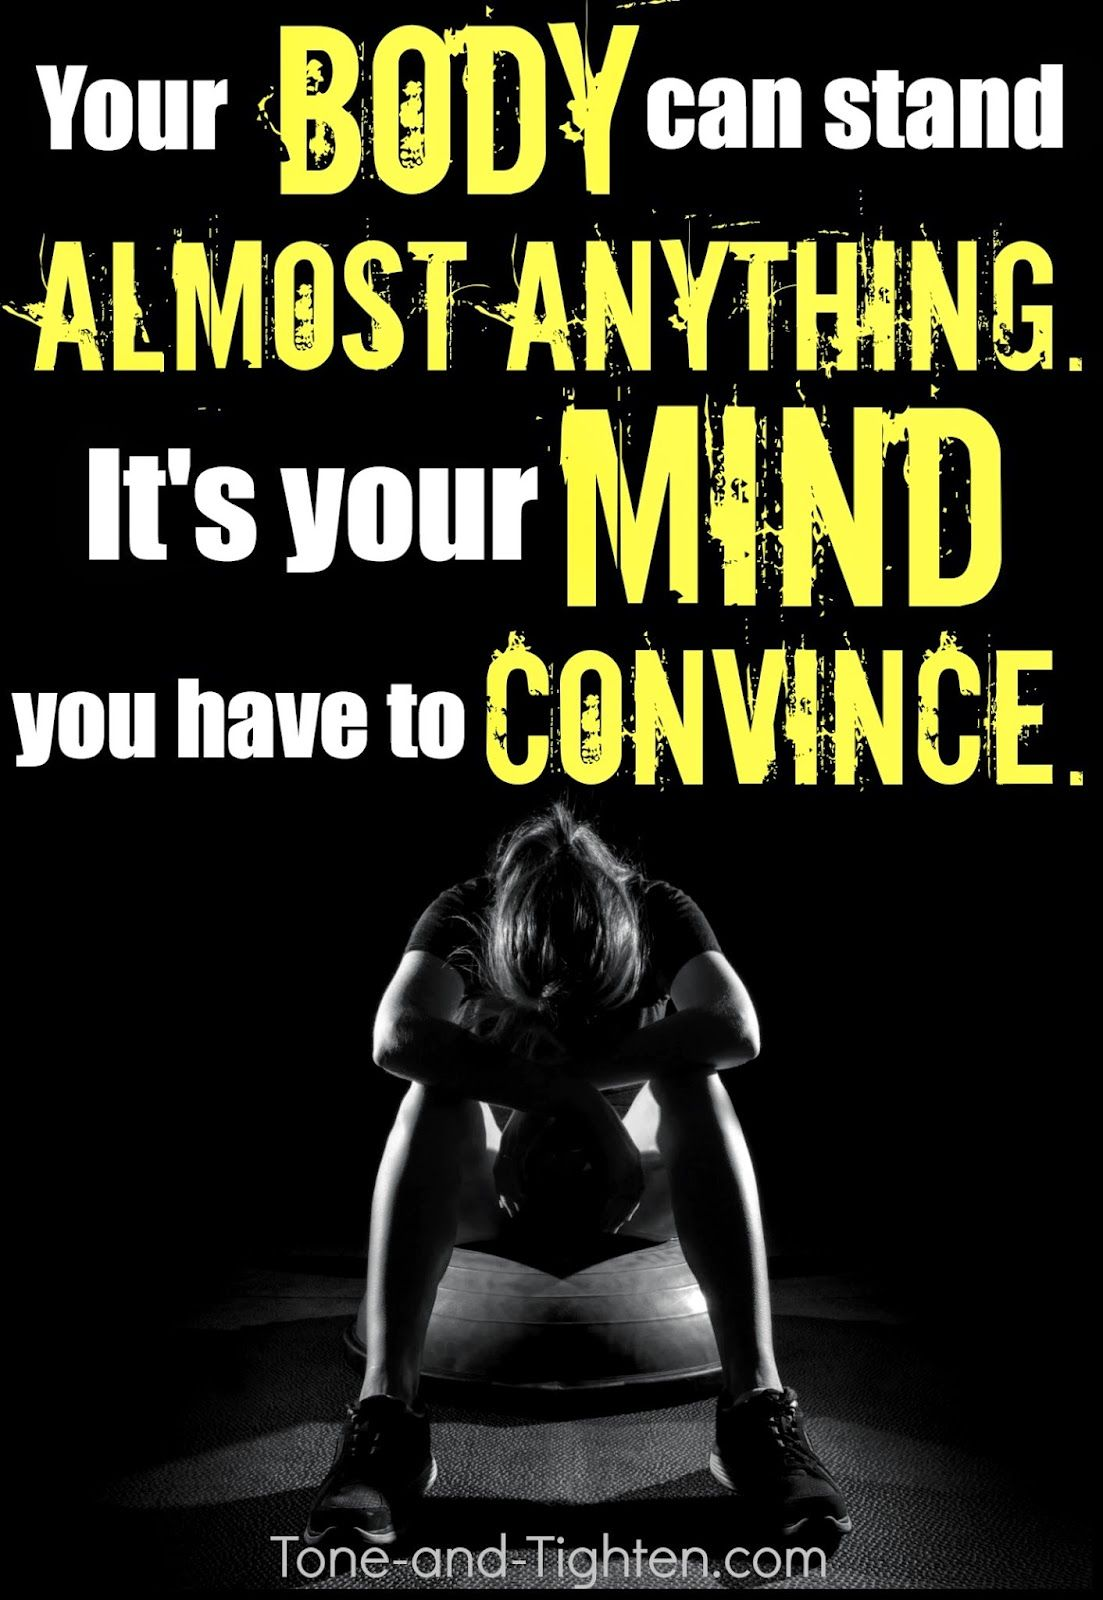 7c7e16ec799ba The hardest muscle to train  Your MIND. Push your limits to realize your  true potential.  fitness  motivation from Tone-and-Tighten.com